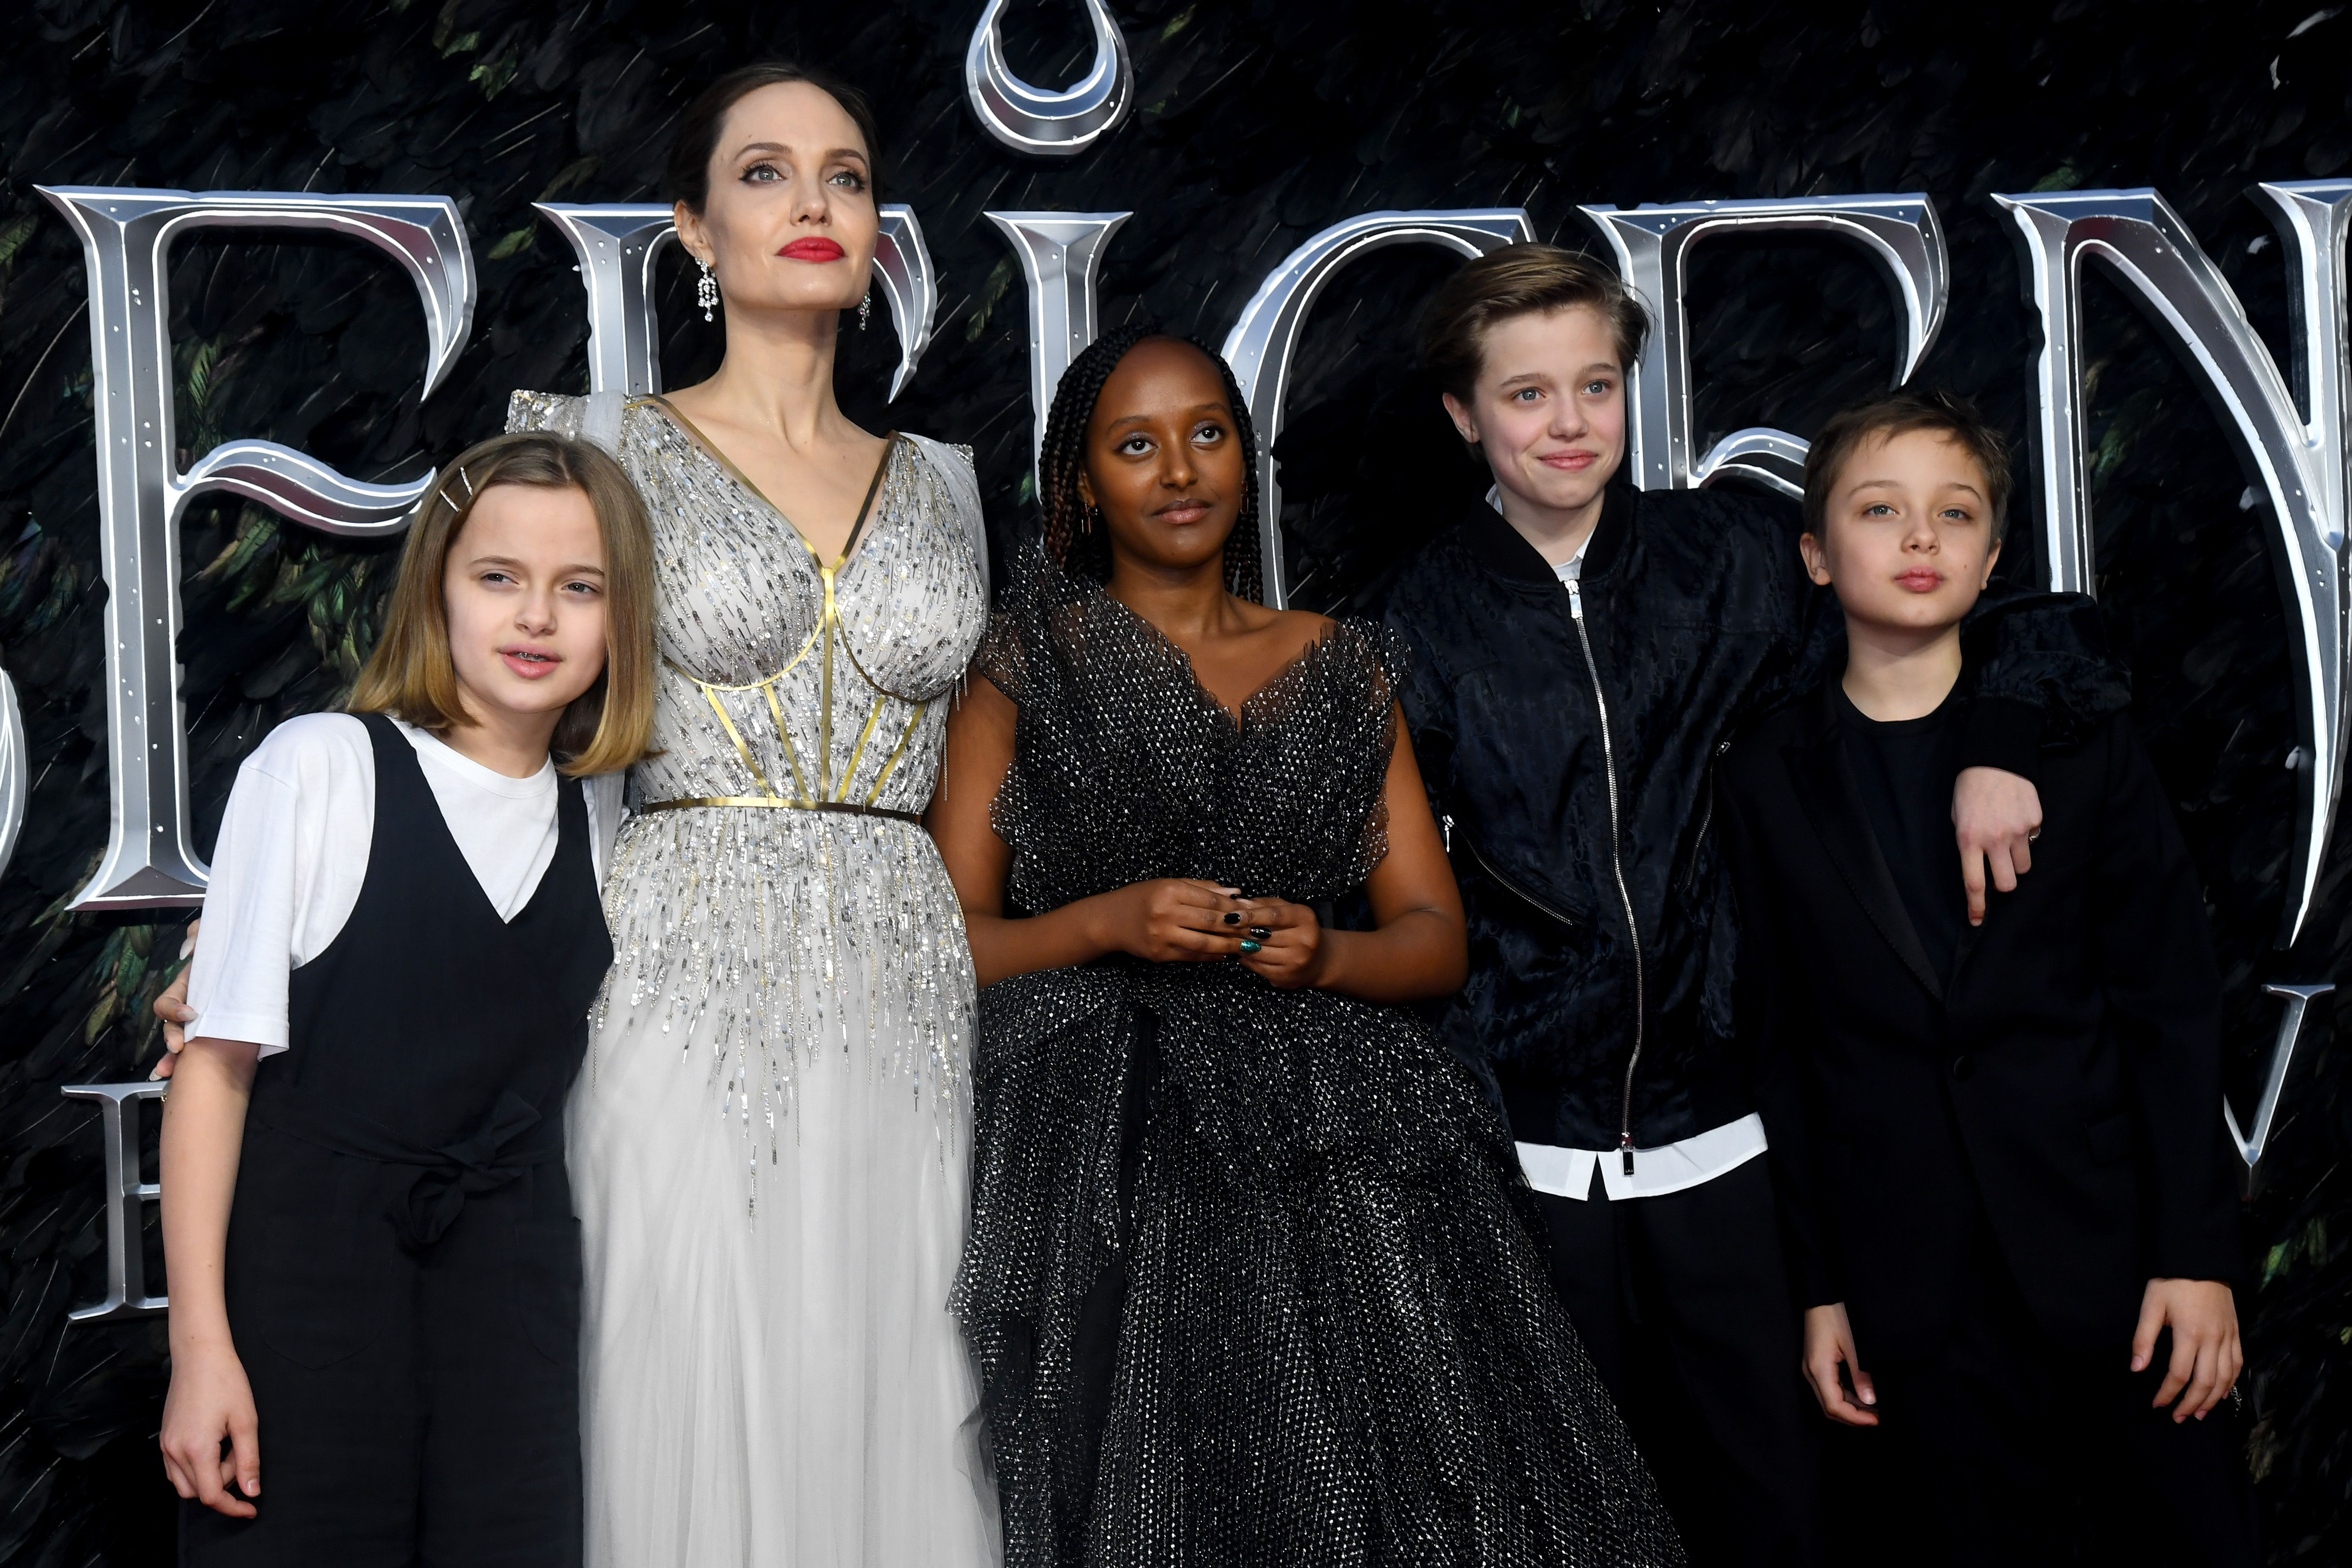 """Angelina Jolie with her kids at the European premiere of """"Maleficent: Mistress of Evil"""" at Odeon IMAX Waterloo on October 09, 2019 